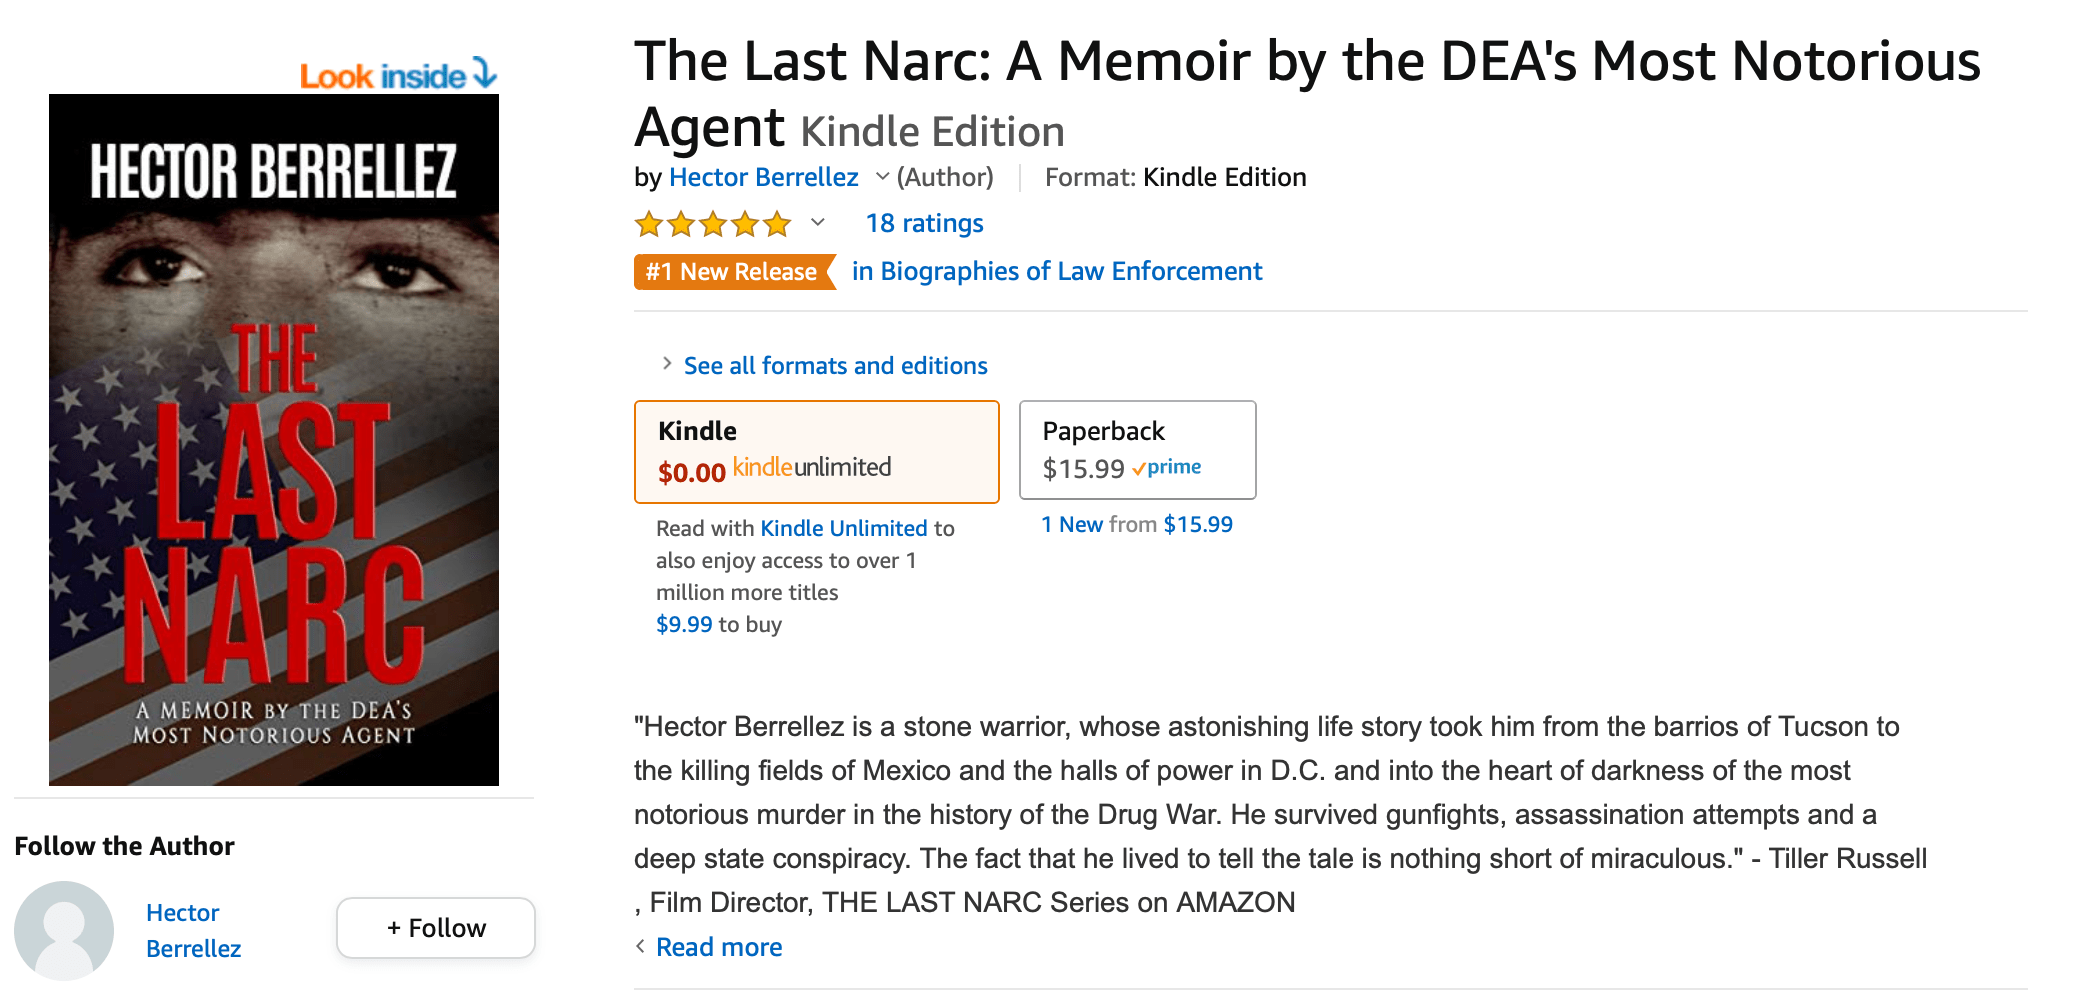 DEA Agent's Book Releases at #1 on Amazon